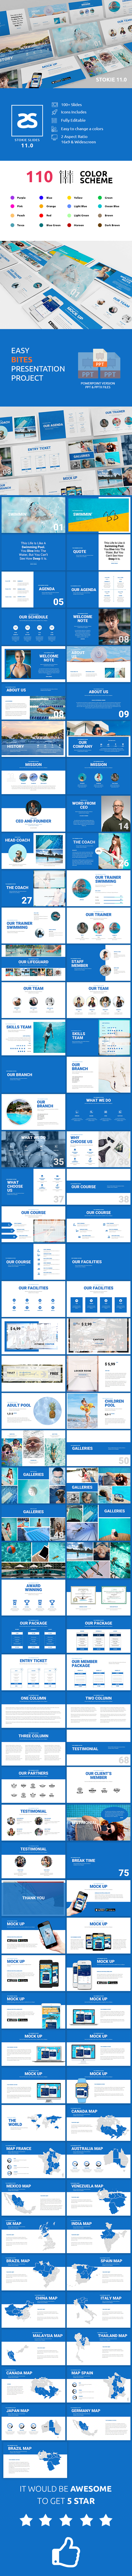 GraphicRiver Swimming Powerpoint Presentation Template 11.0 21010000